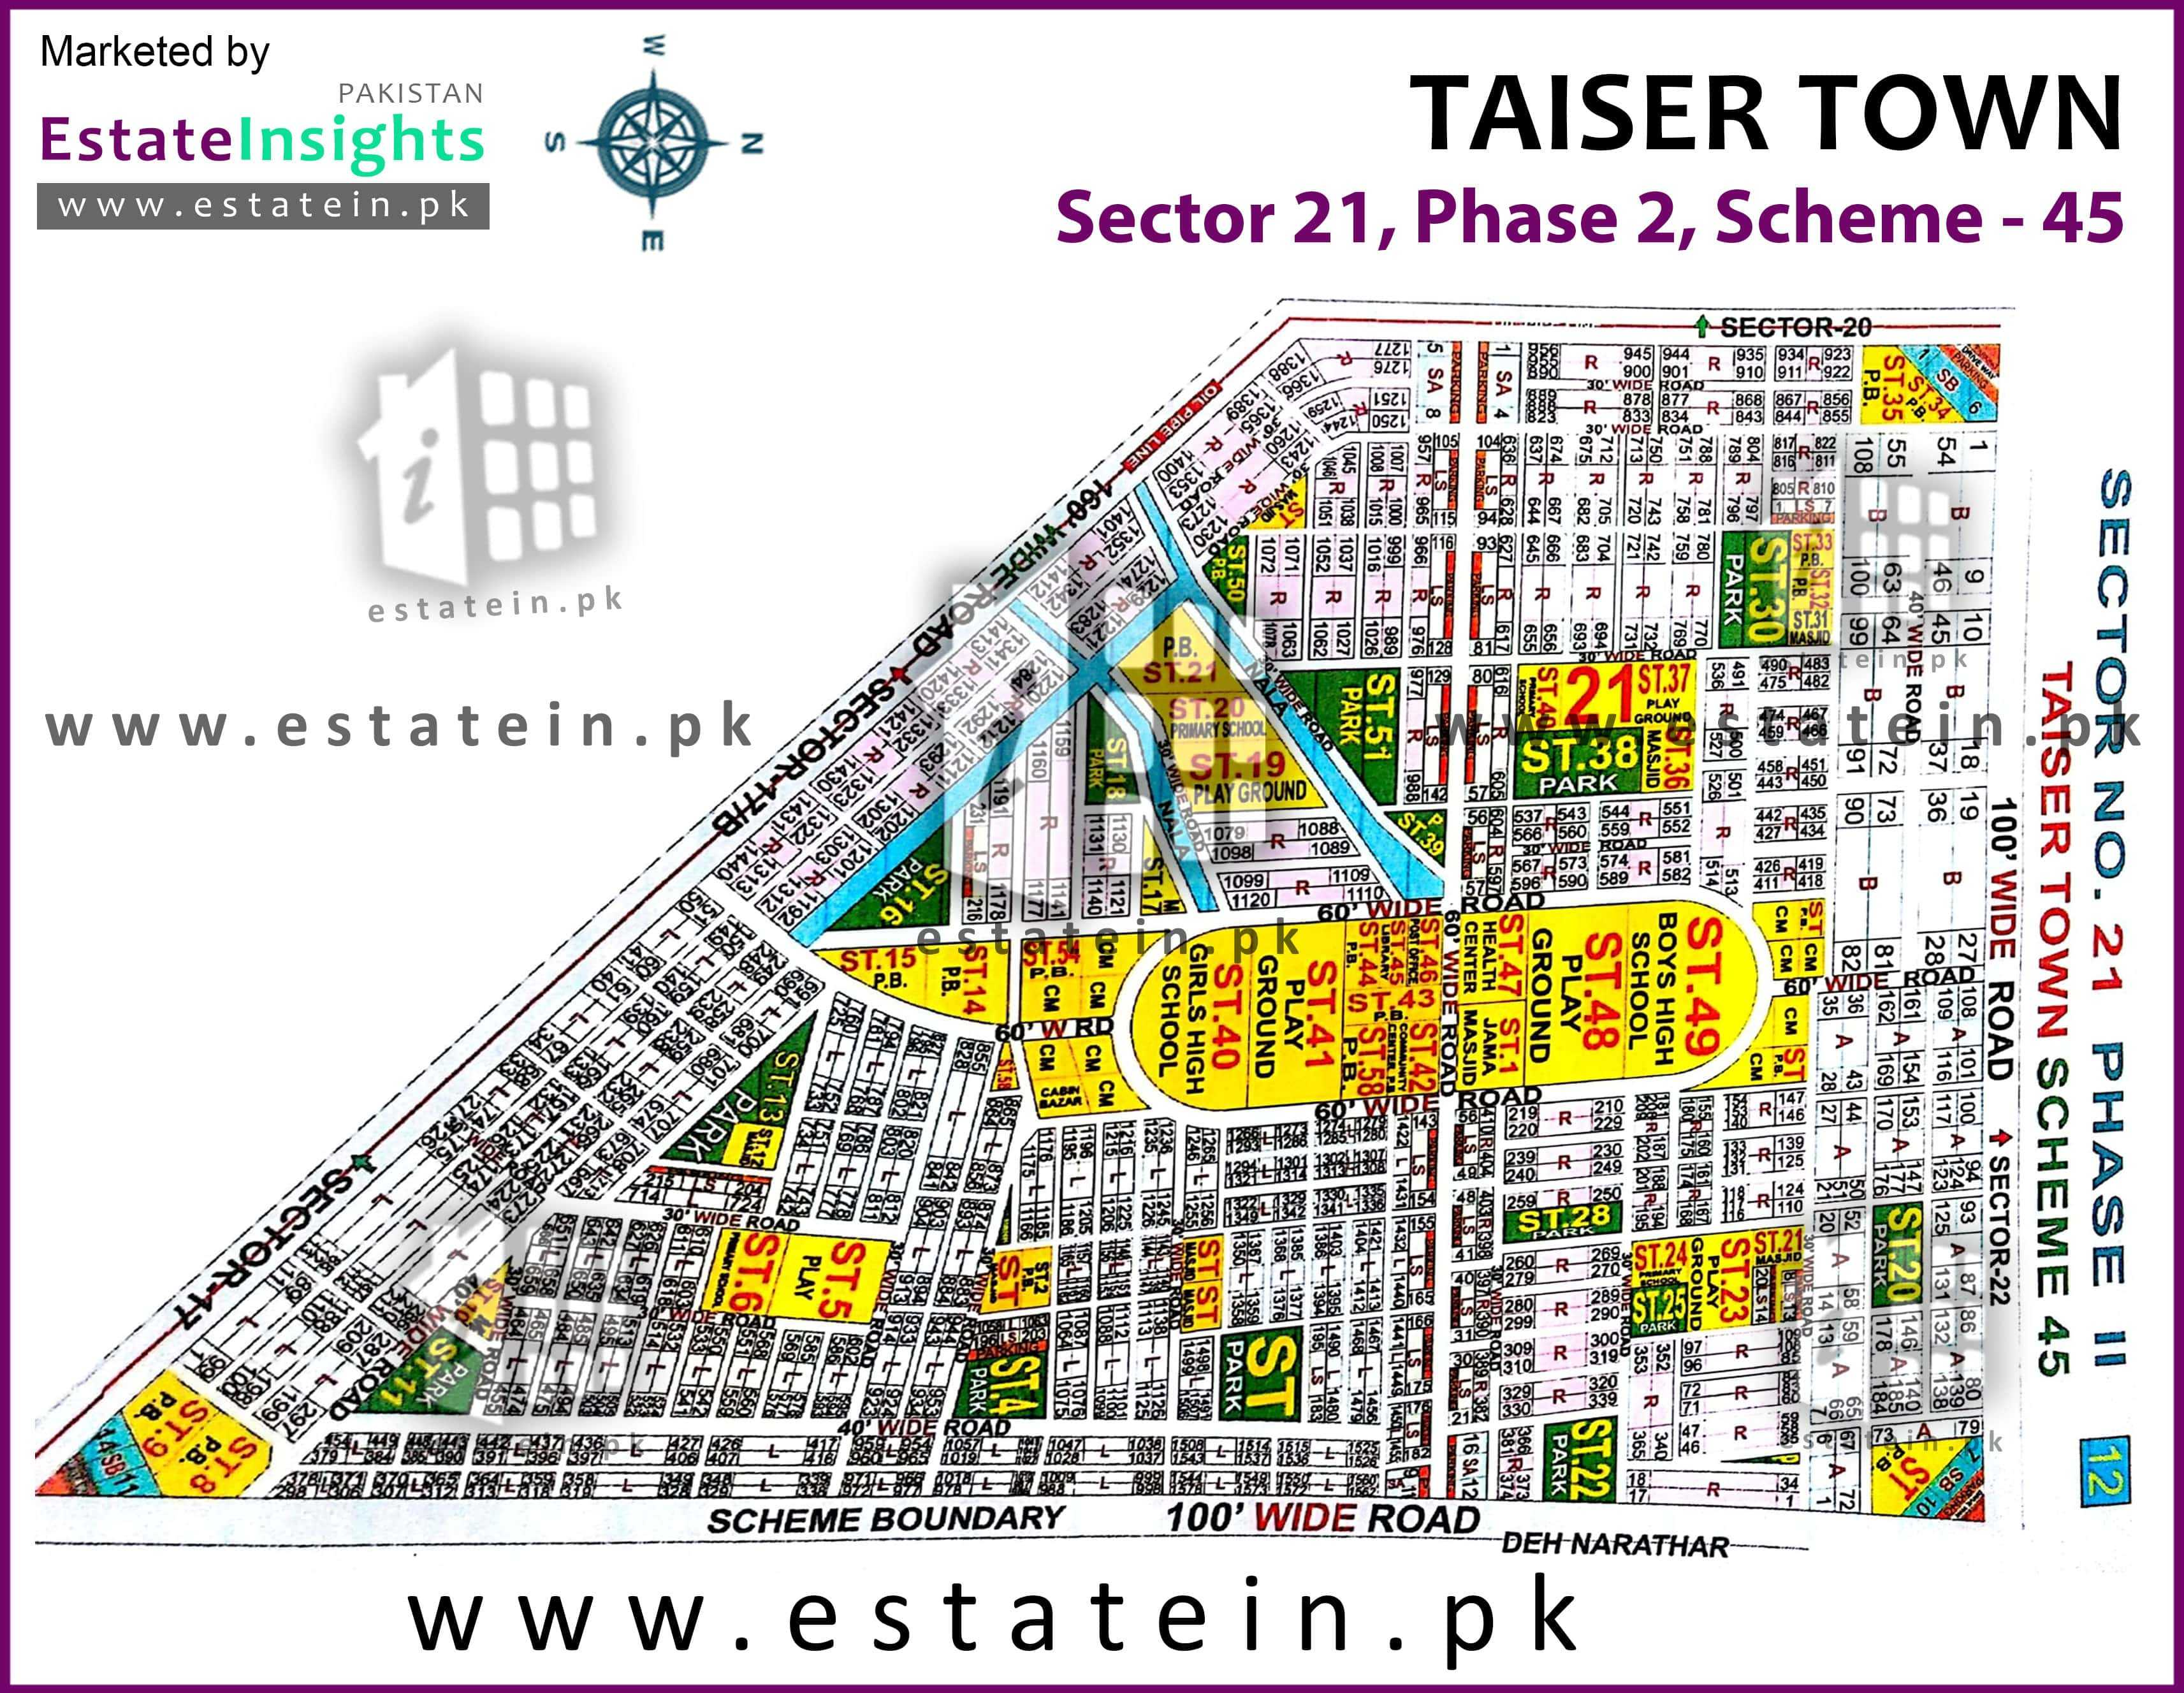 Site Plan of Sector 21 of Taiser Town Phase II